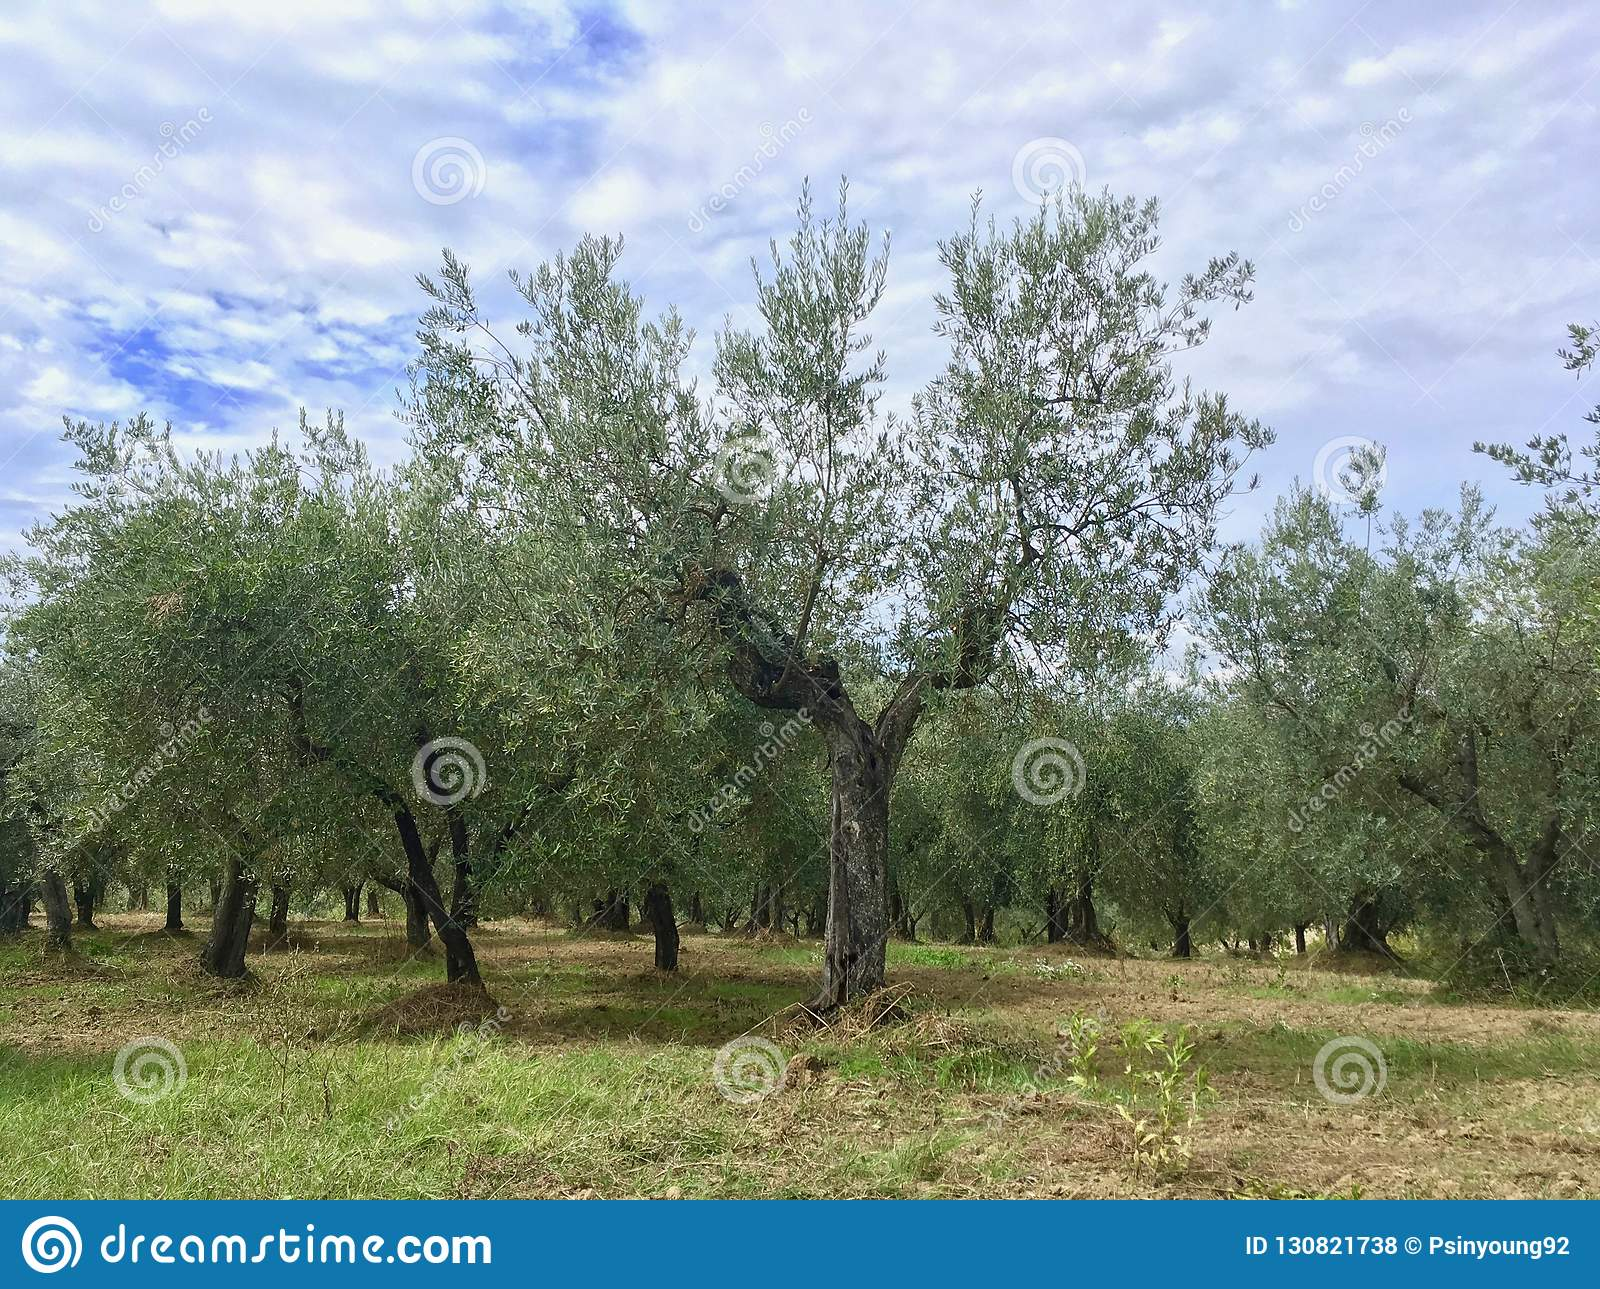 Olive tree in heard shape inside of the olive forest in Tuscany, Italy